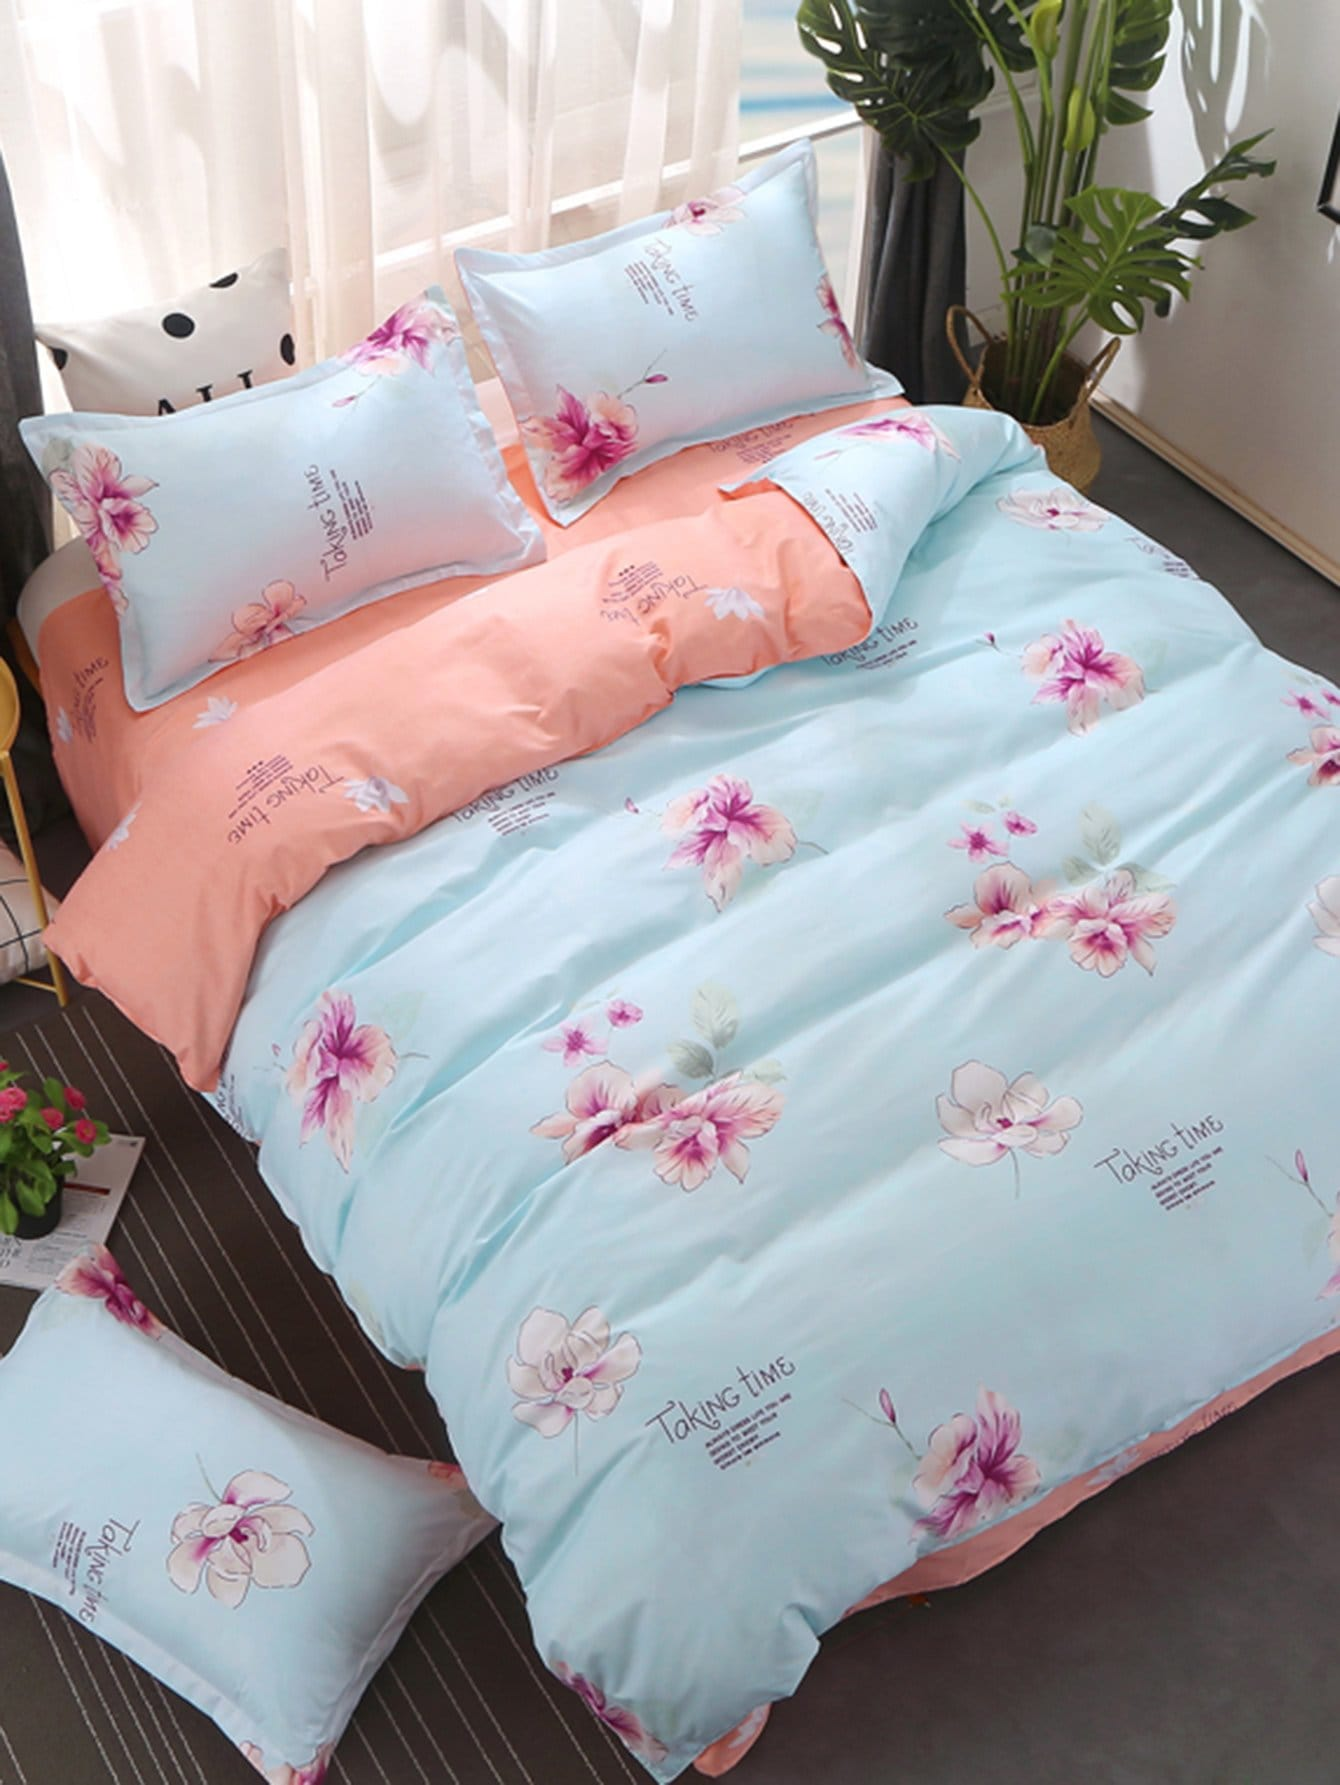 Flower & Letter Print Bedding Set letter print two tone bedding set